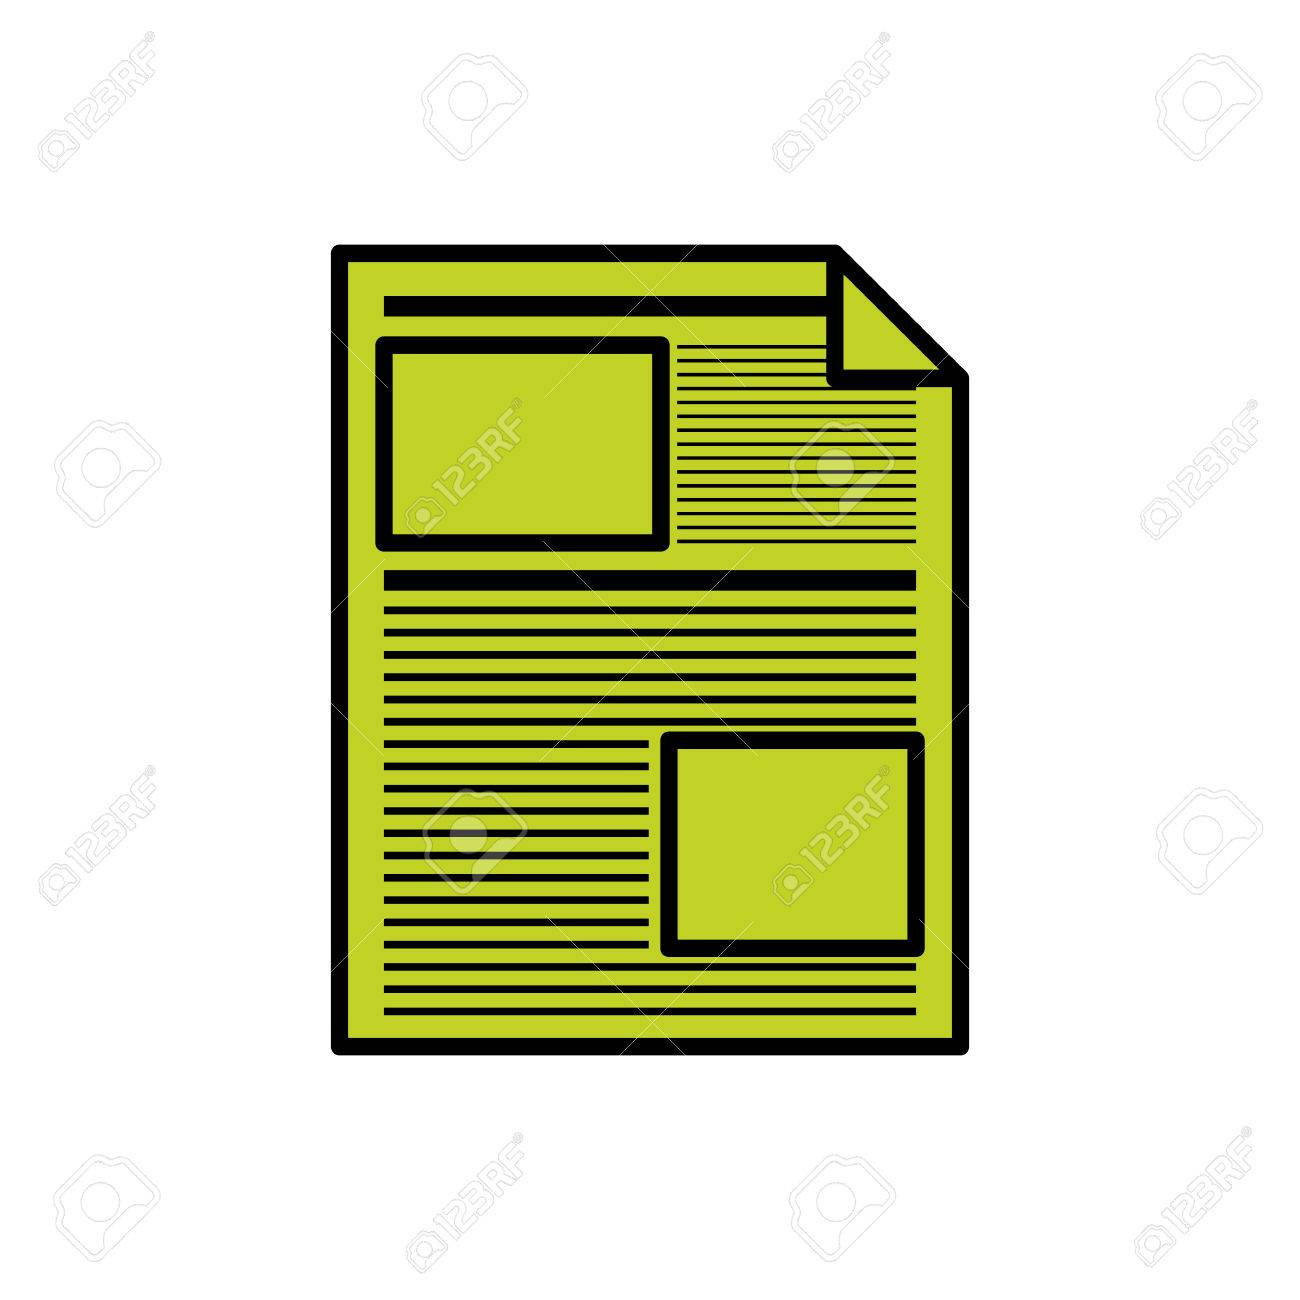 piece of paper icon document data archive office and information